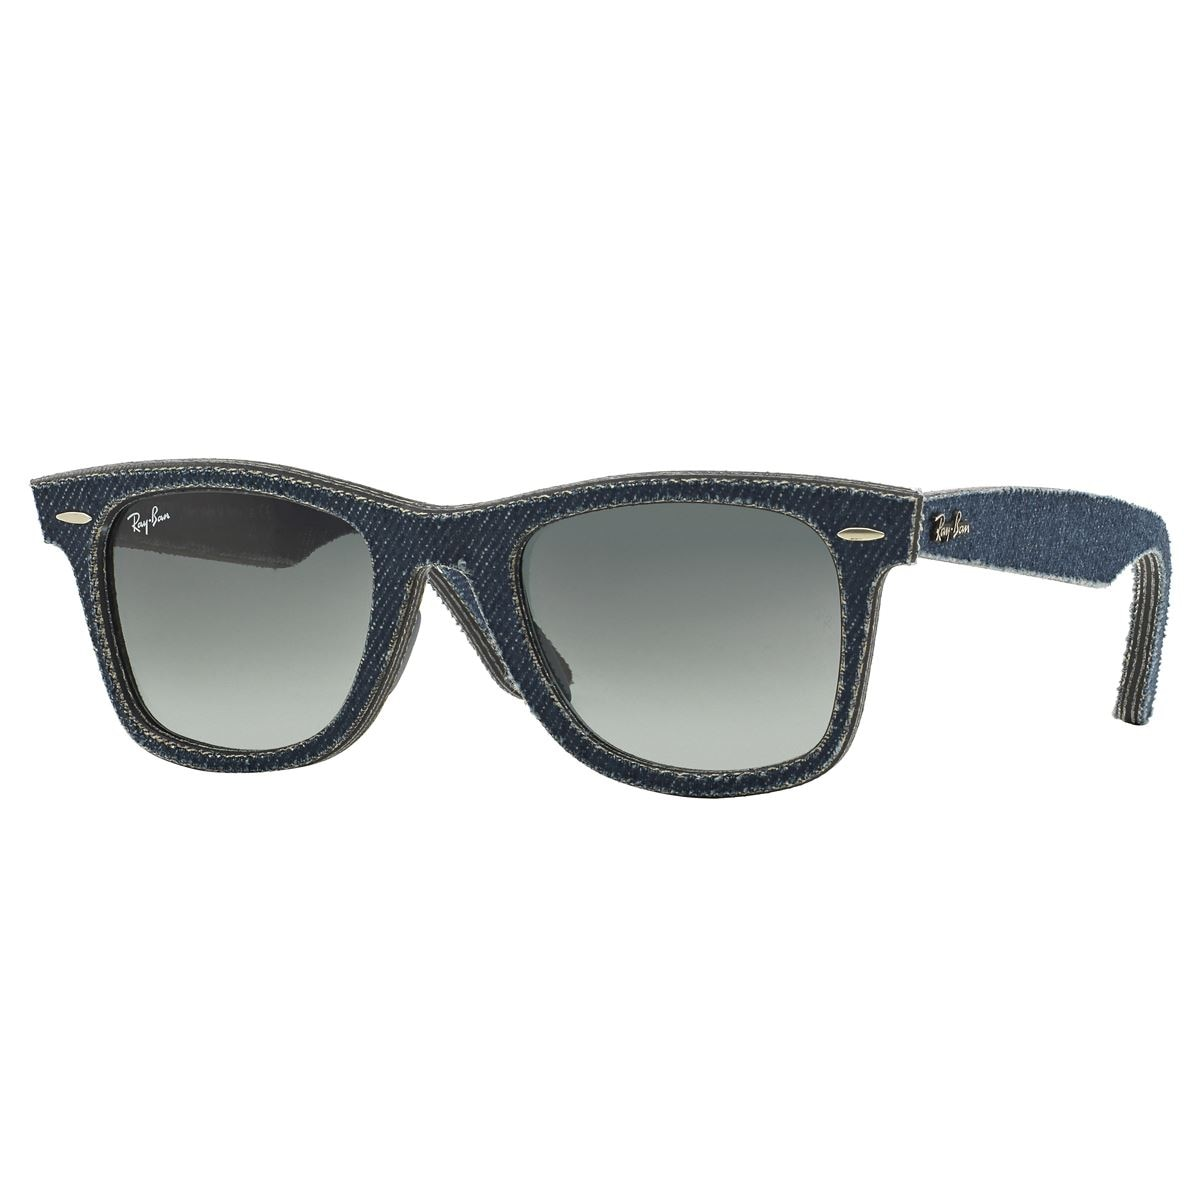 Solar ray ban 0rb2140 11637150  - Sanborns